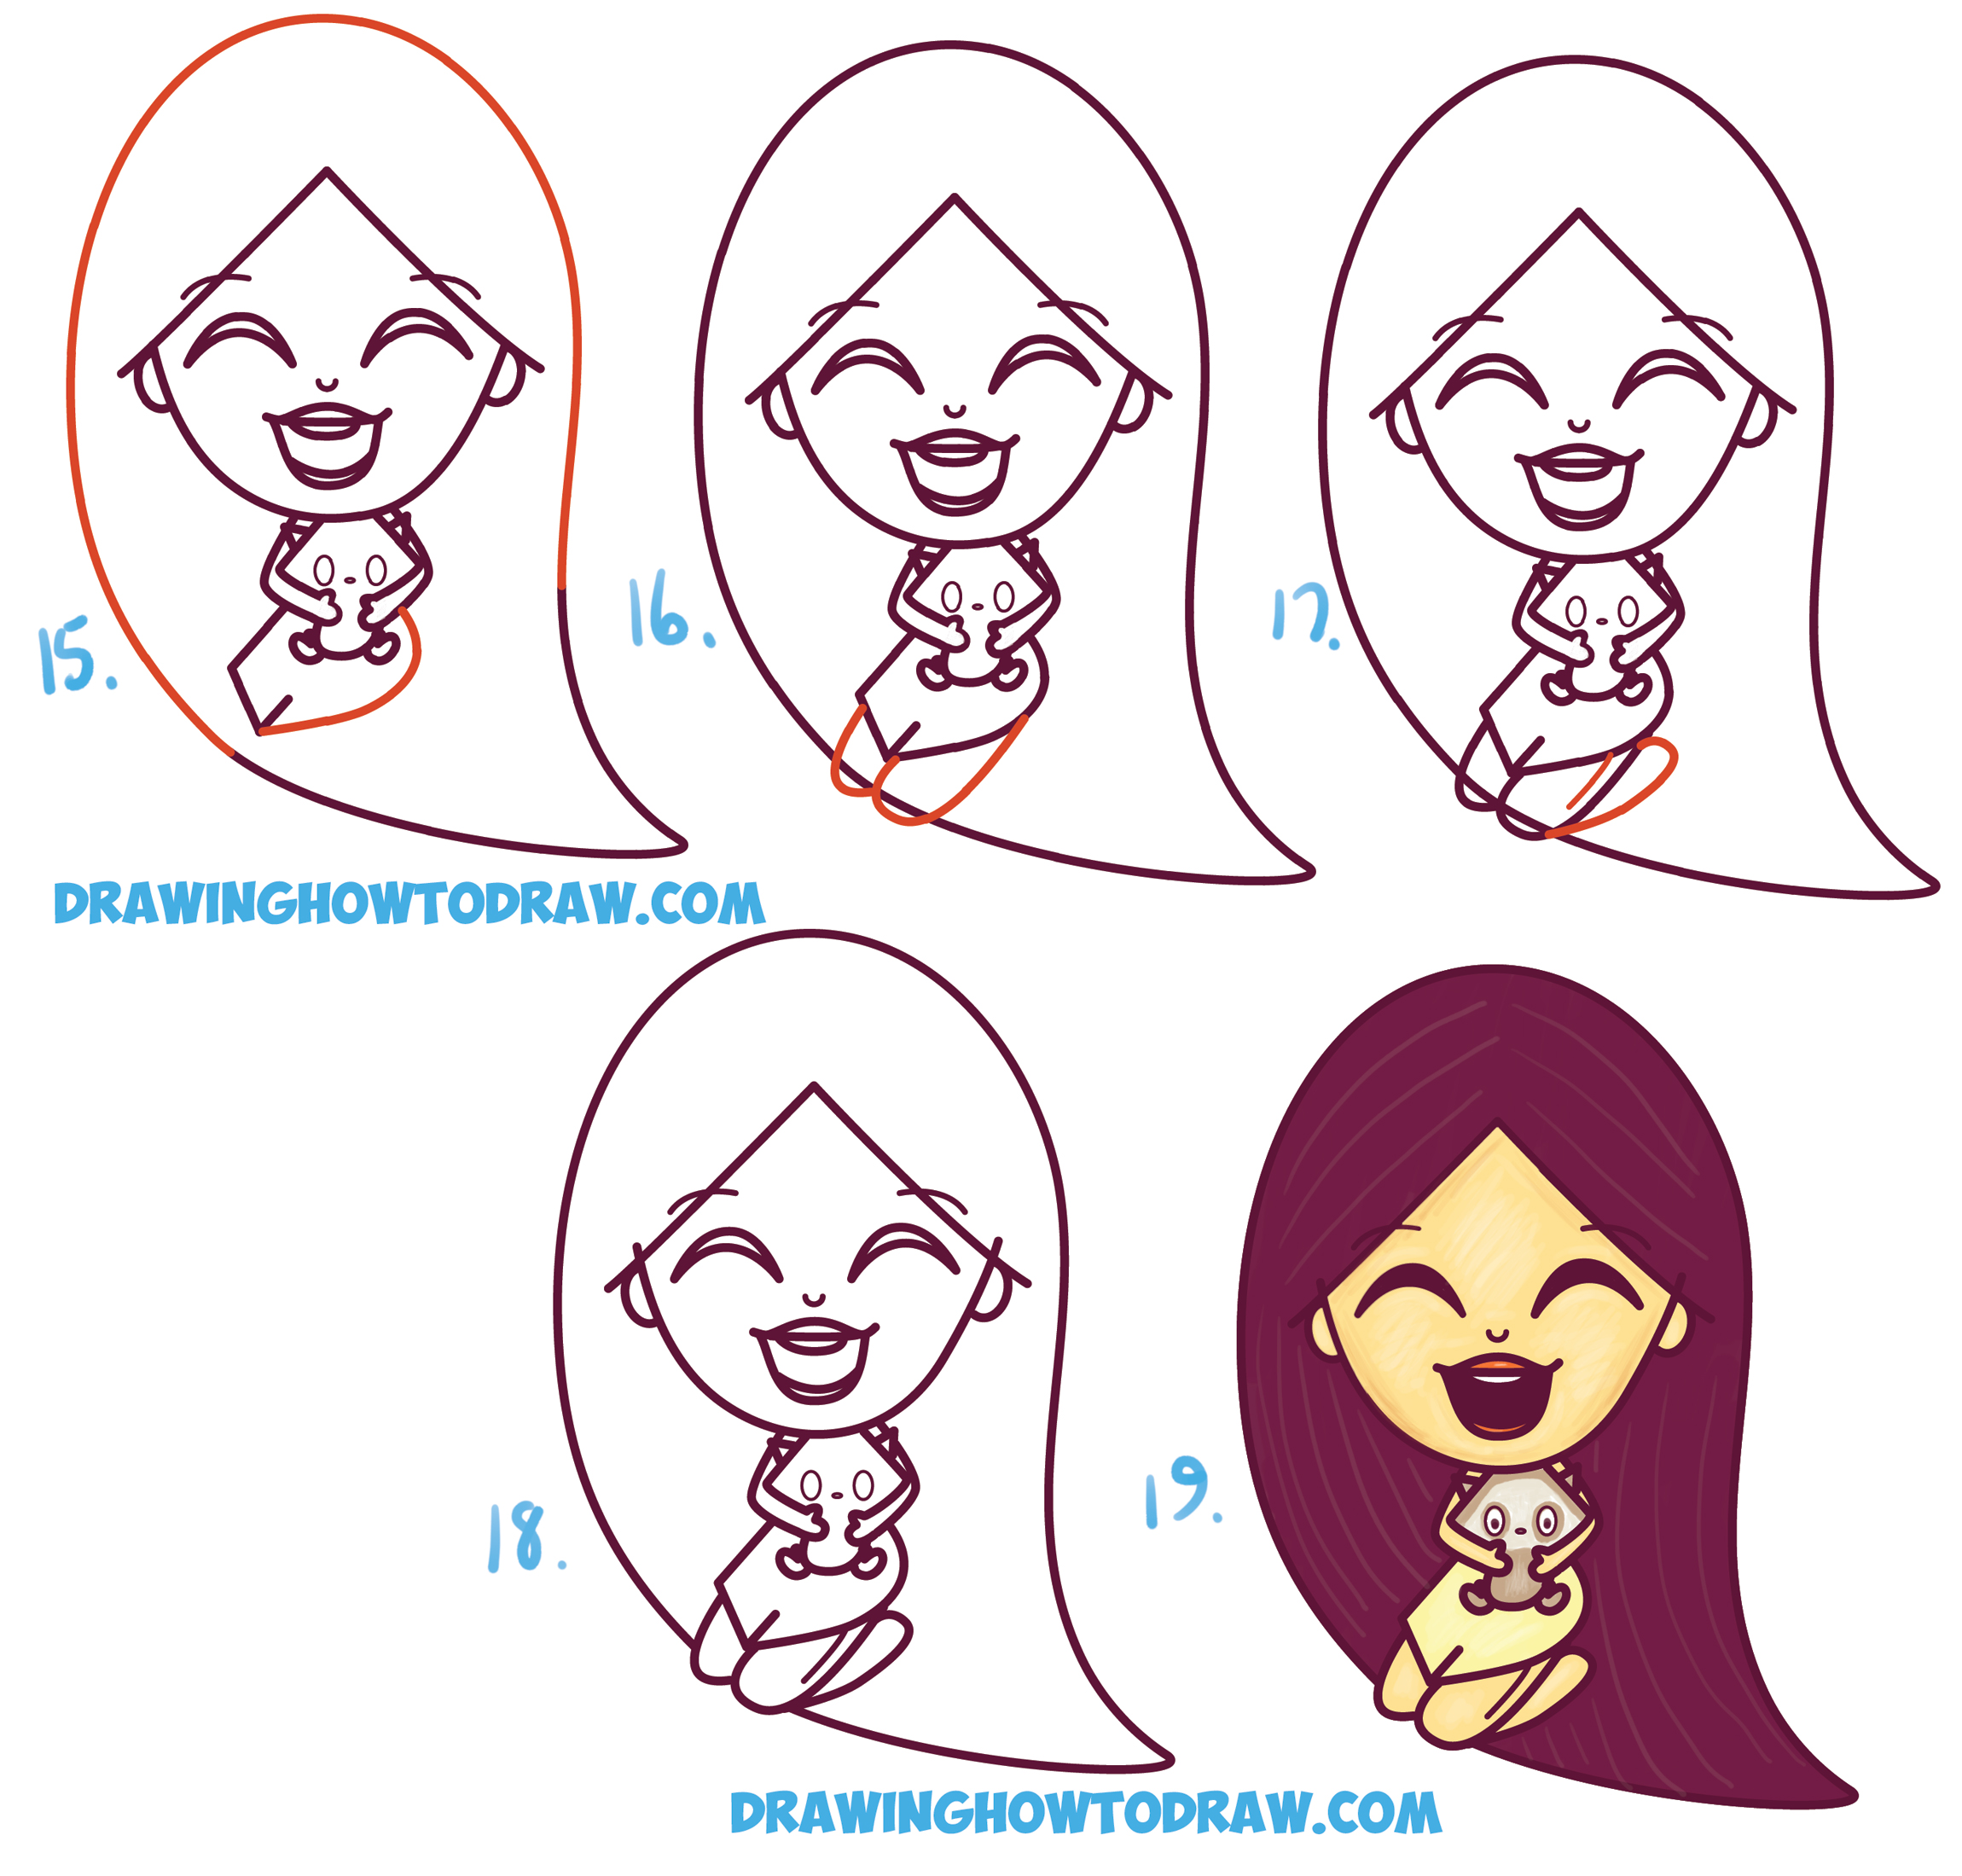 Learn How to Draw a Cute Kawaii / Chibi Disney's Pocahontas and Meeko Simple Steps Drawing Lesson for Children and Beginners